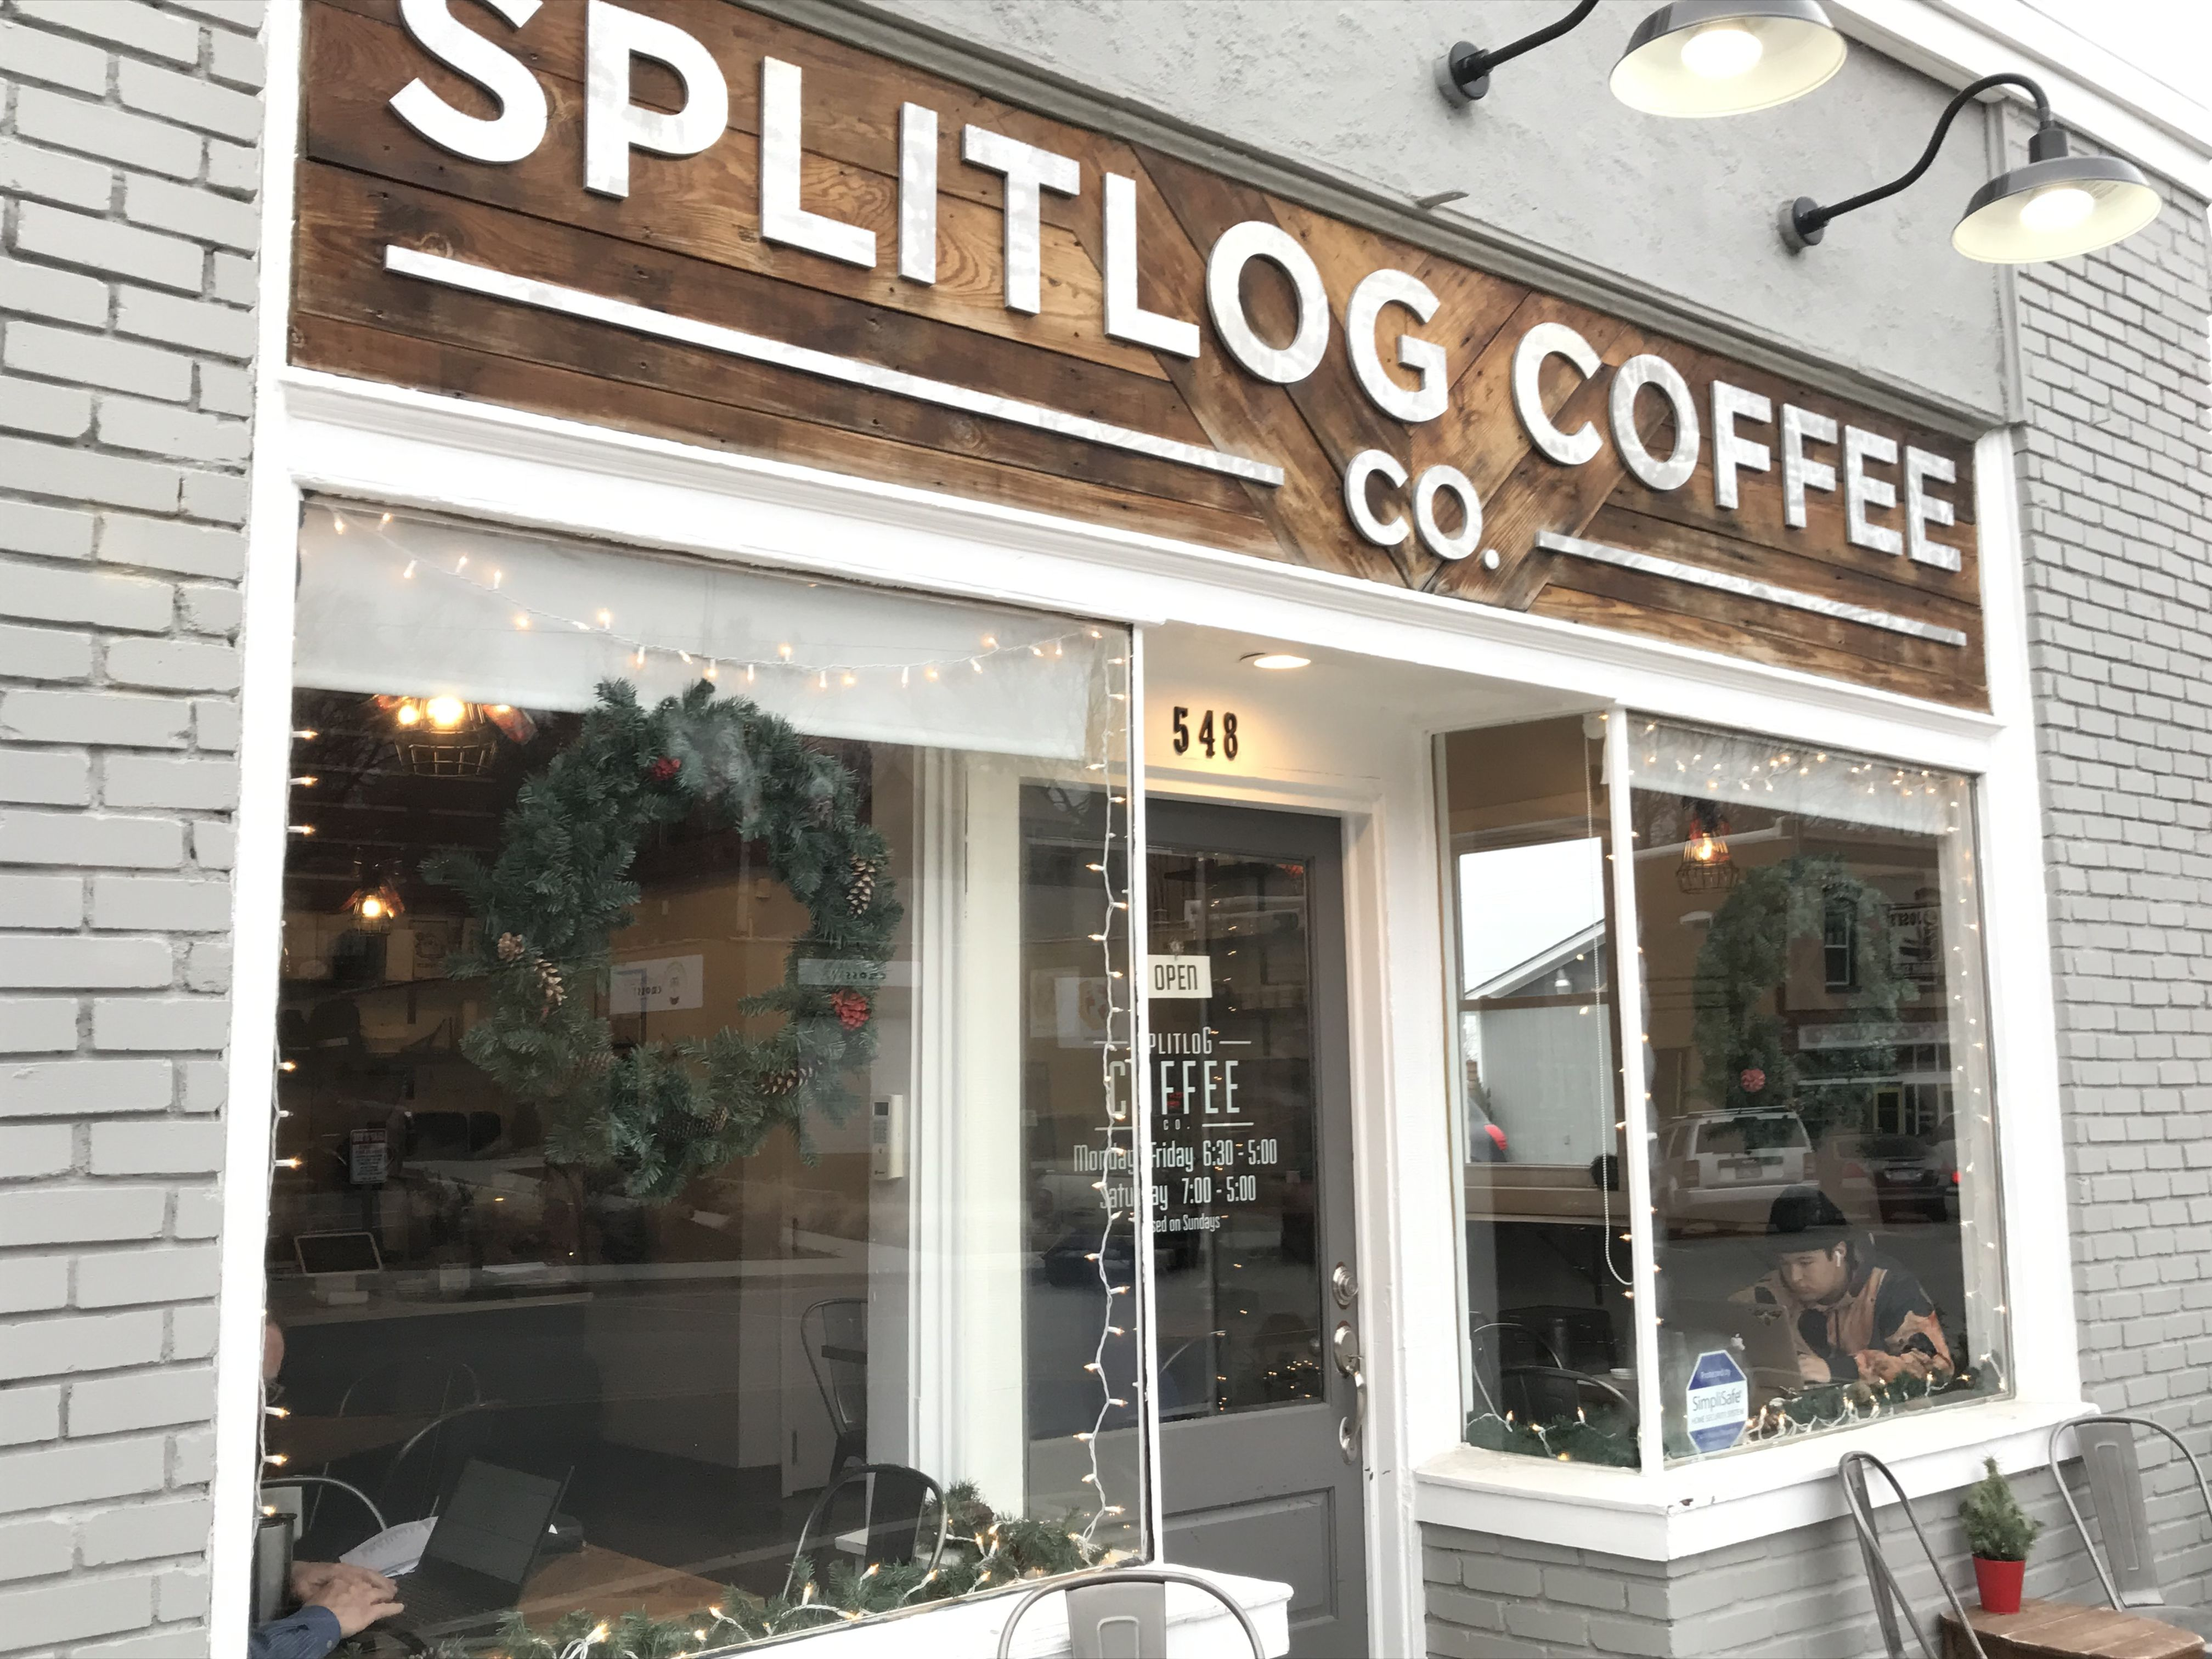 Splitlog Coffee Co I Stopped In Here Across The Street From Slaps Bbq It Is A Fun Coffee Shop At 548 Central Ave That Serves Cof Kansas City Kansas City